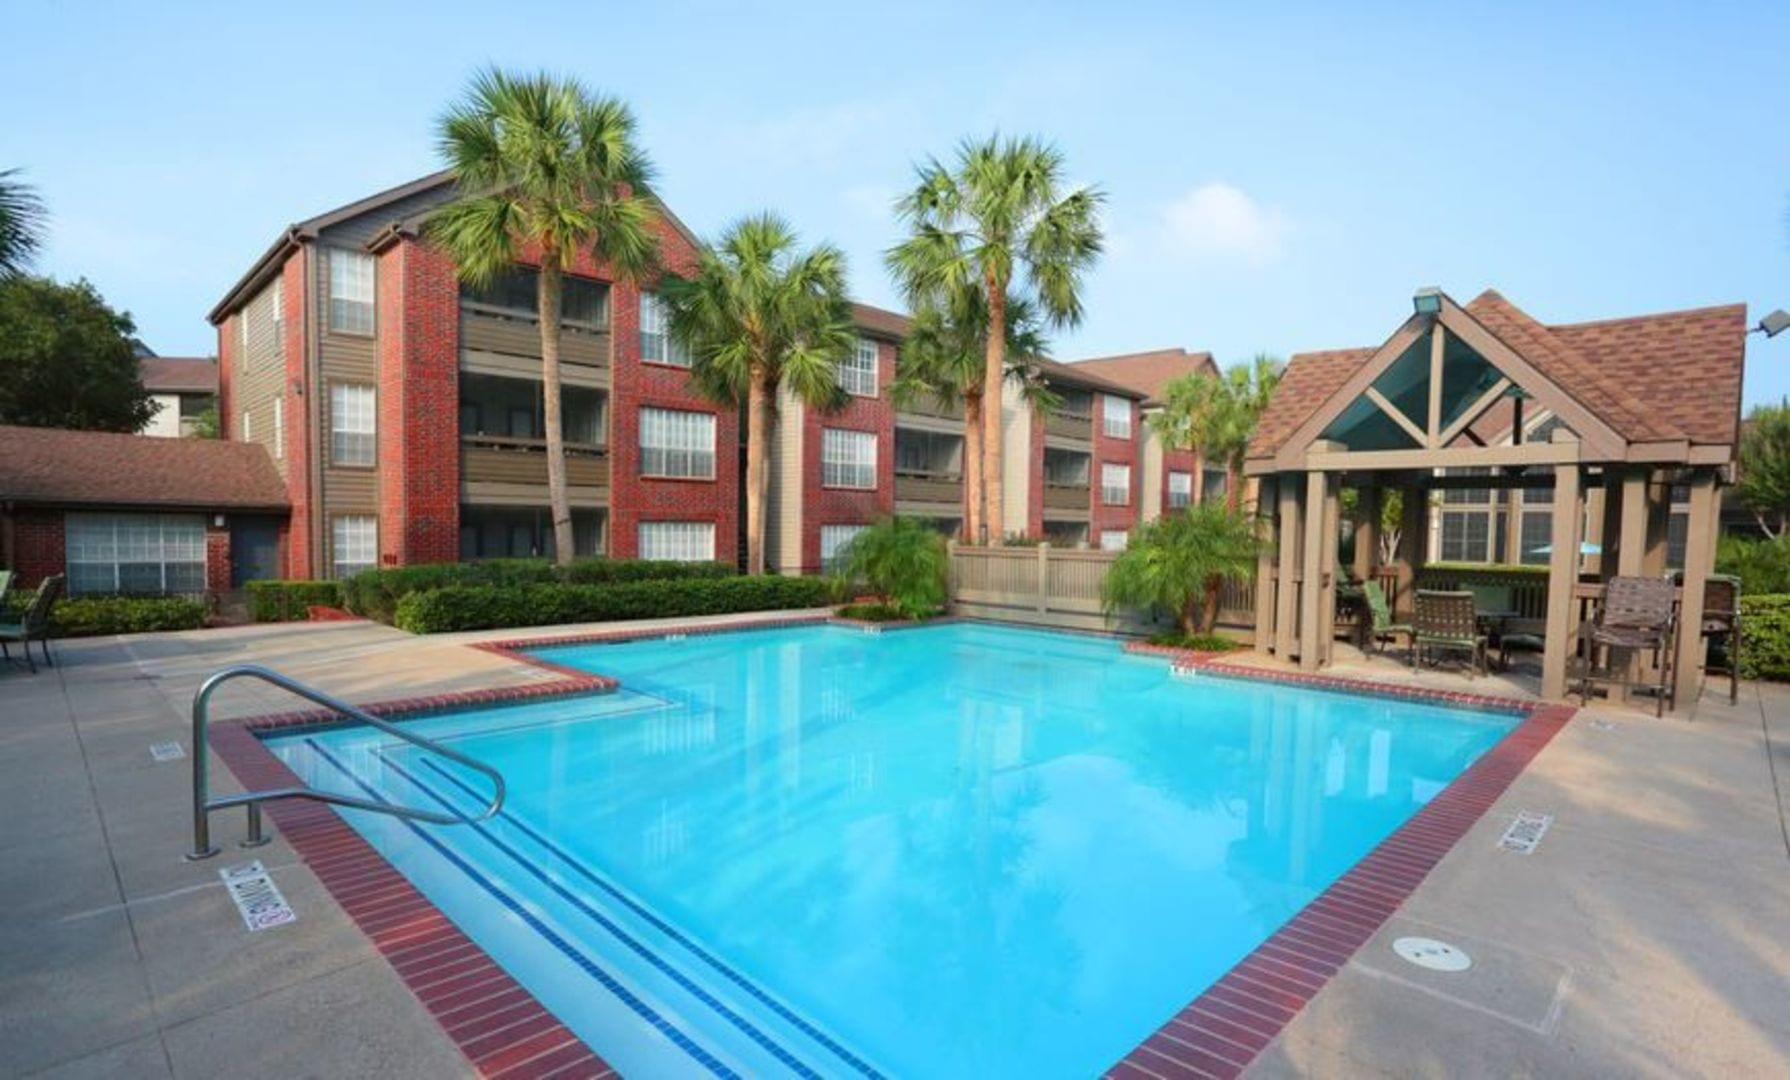 Apartments for Rent in Webster, TX | The Haven On Buoy - Home